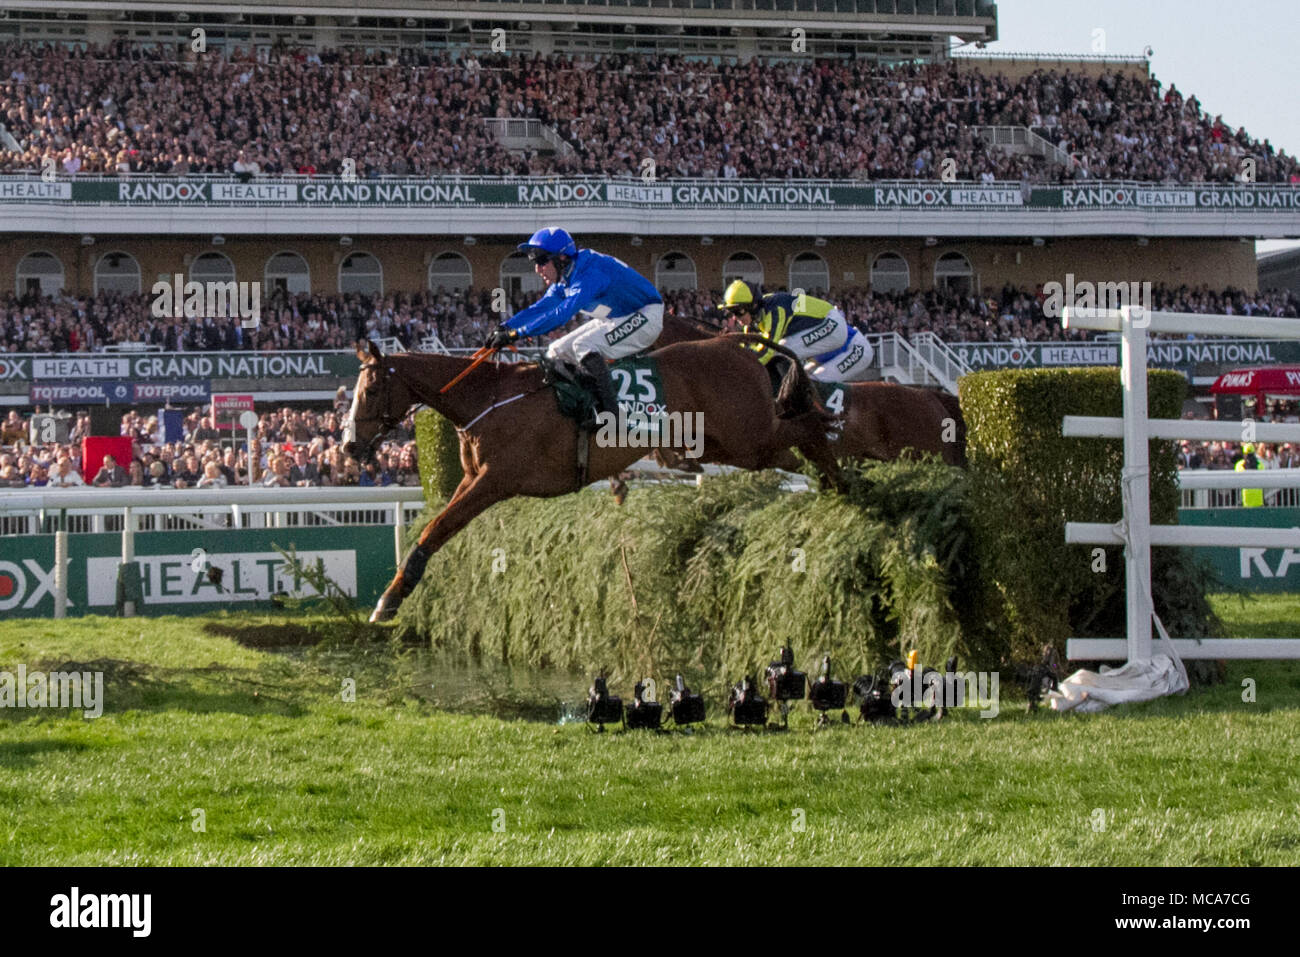 Randox Health Grand National, Aintree, Liverpool, Merseyside. 14th April 2018. Grand National horses & riders race over the grandstand water jump.  Credit: Mediaworld Images/Alamy Live News Stock Photo